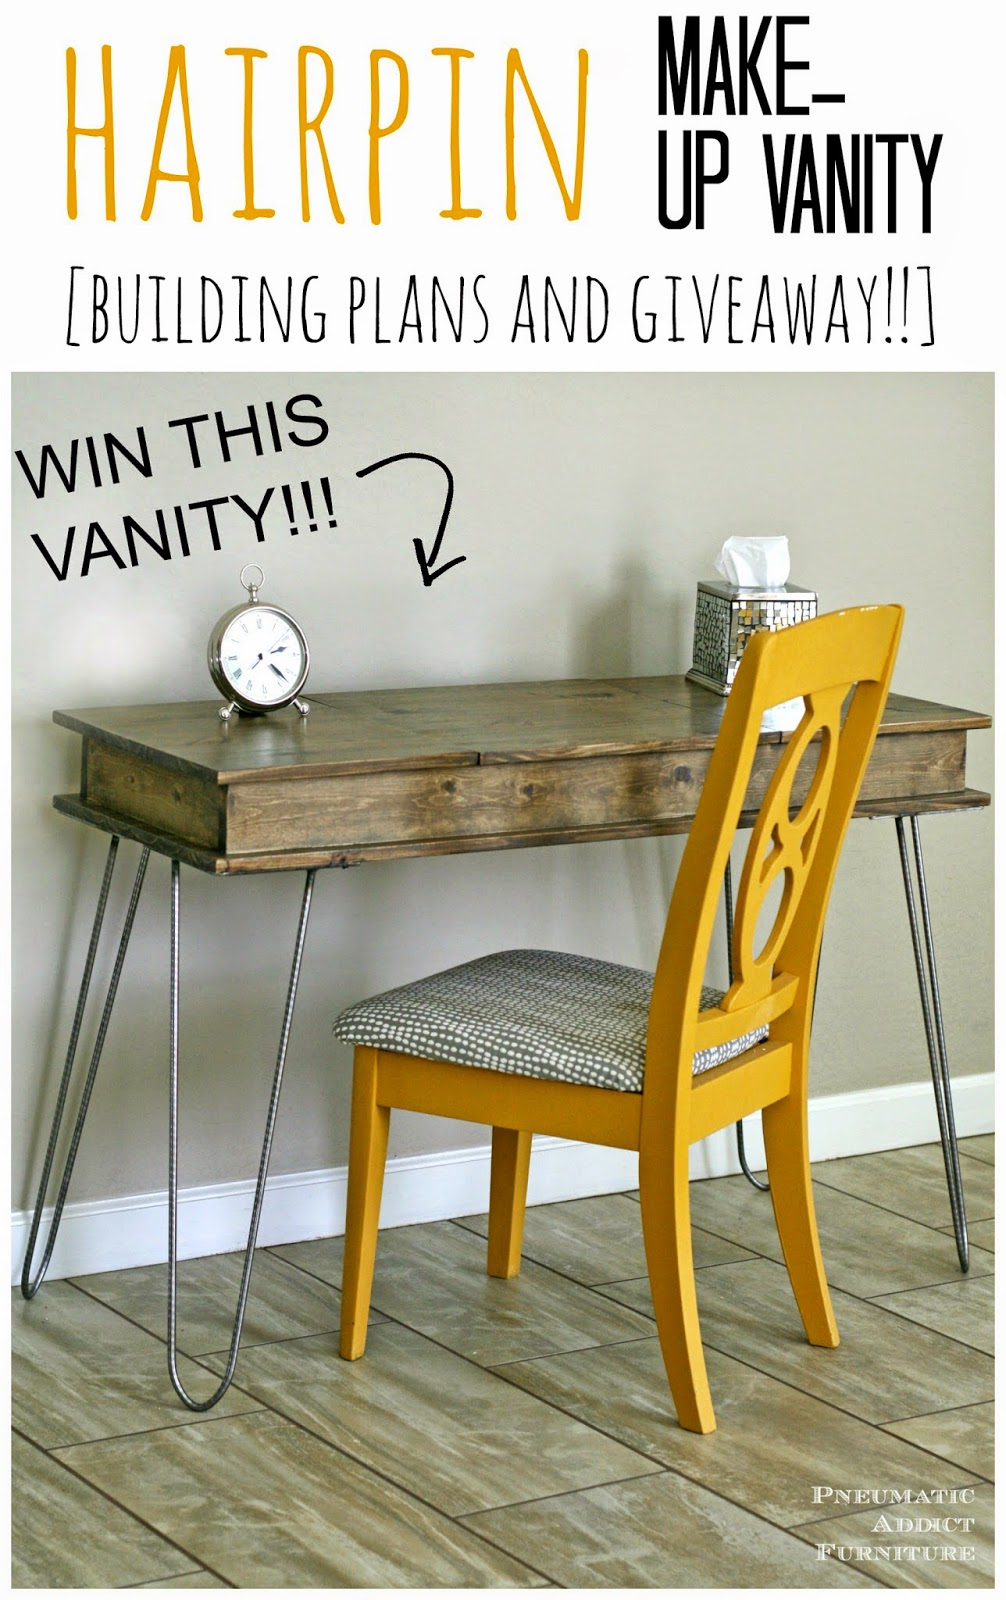 Hairpin Make Up Vanity Building Plans And Giveaway Pneumatic